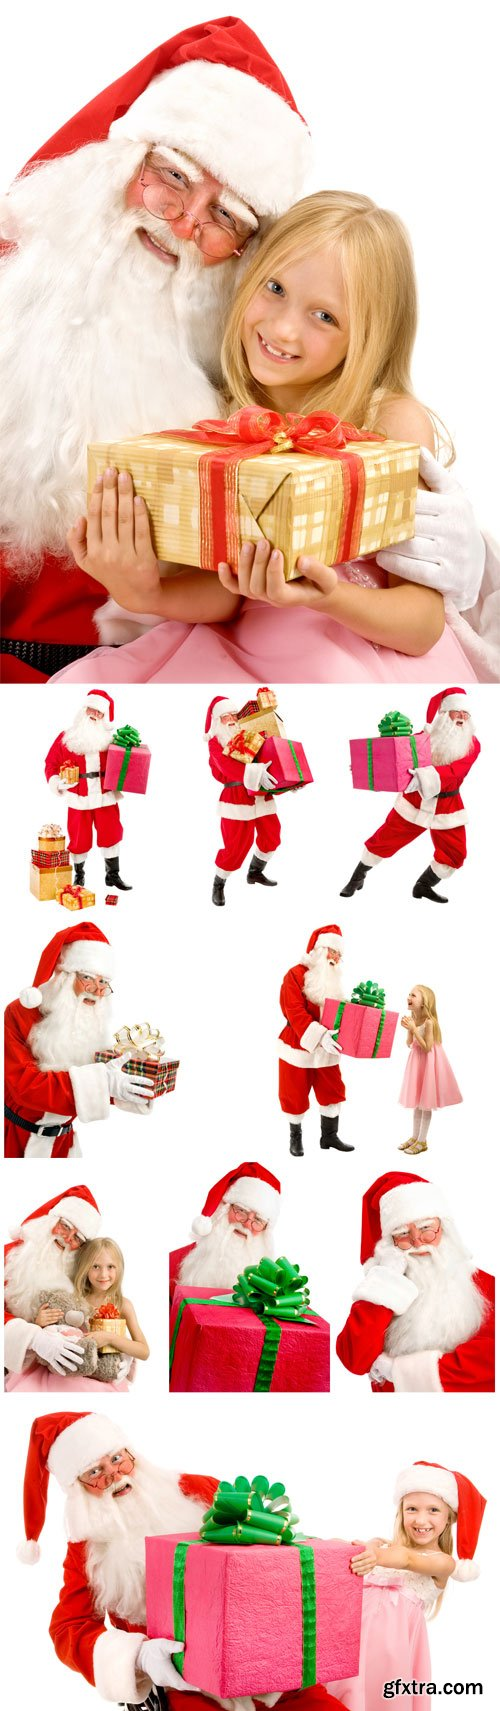 New Year and Christmas stock photos №33